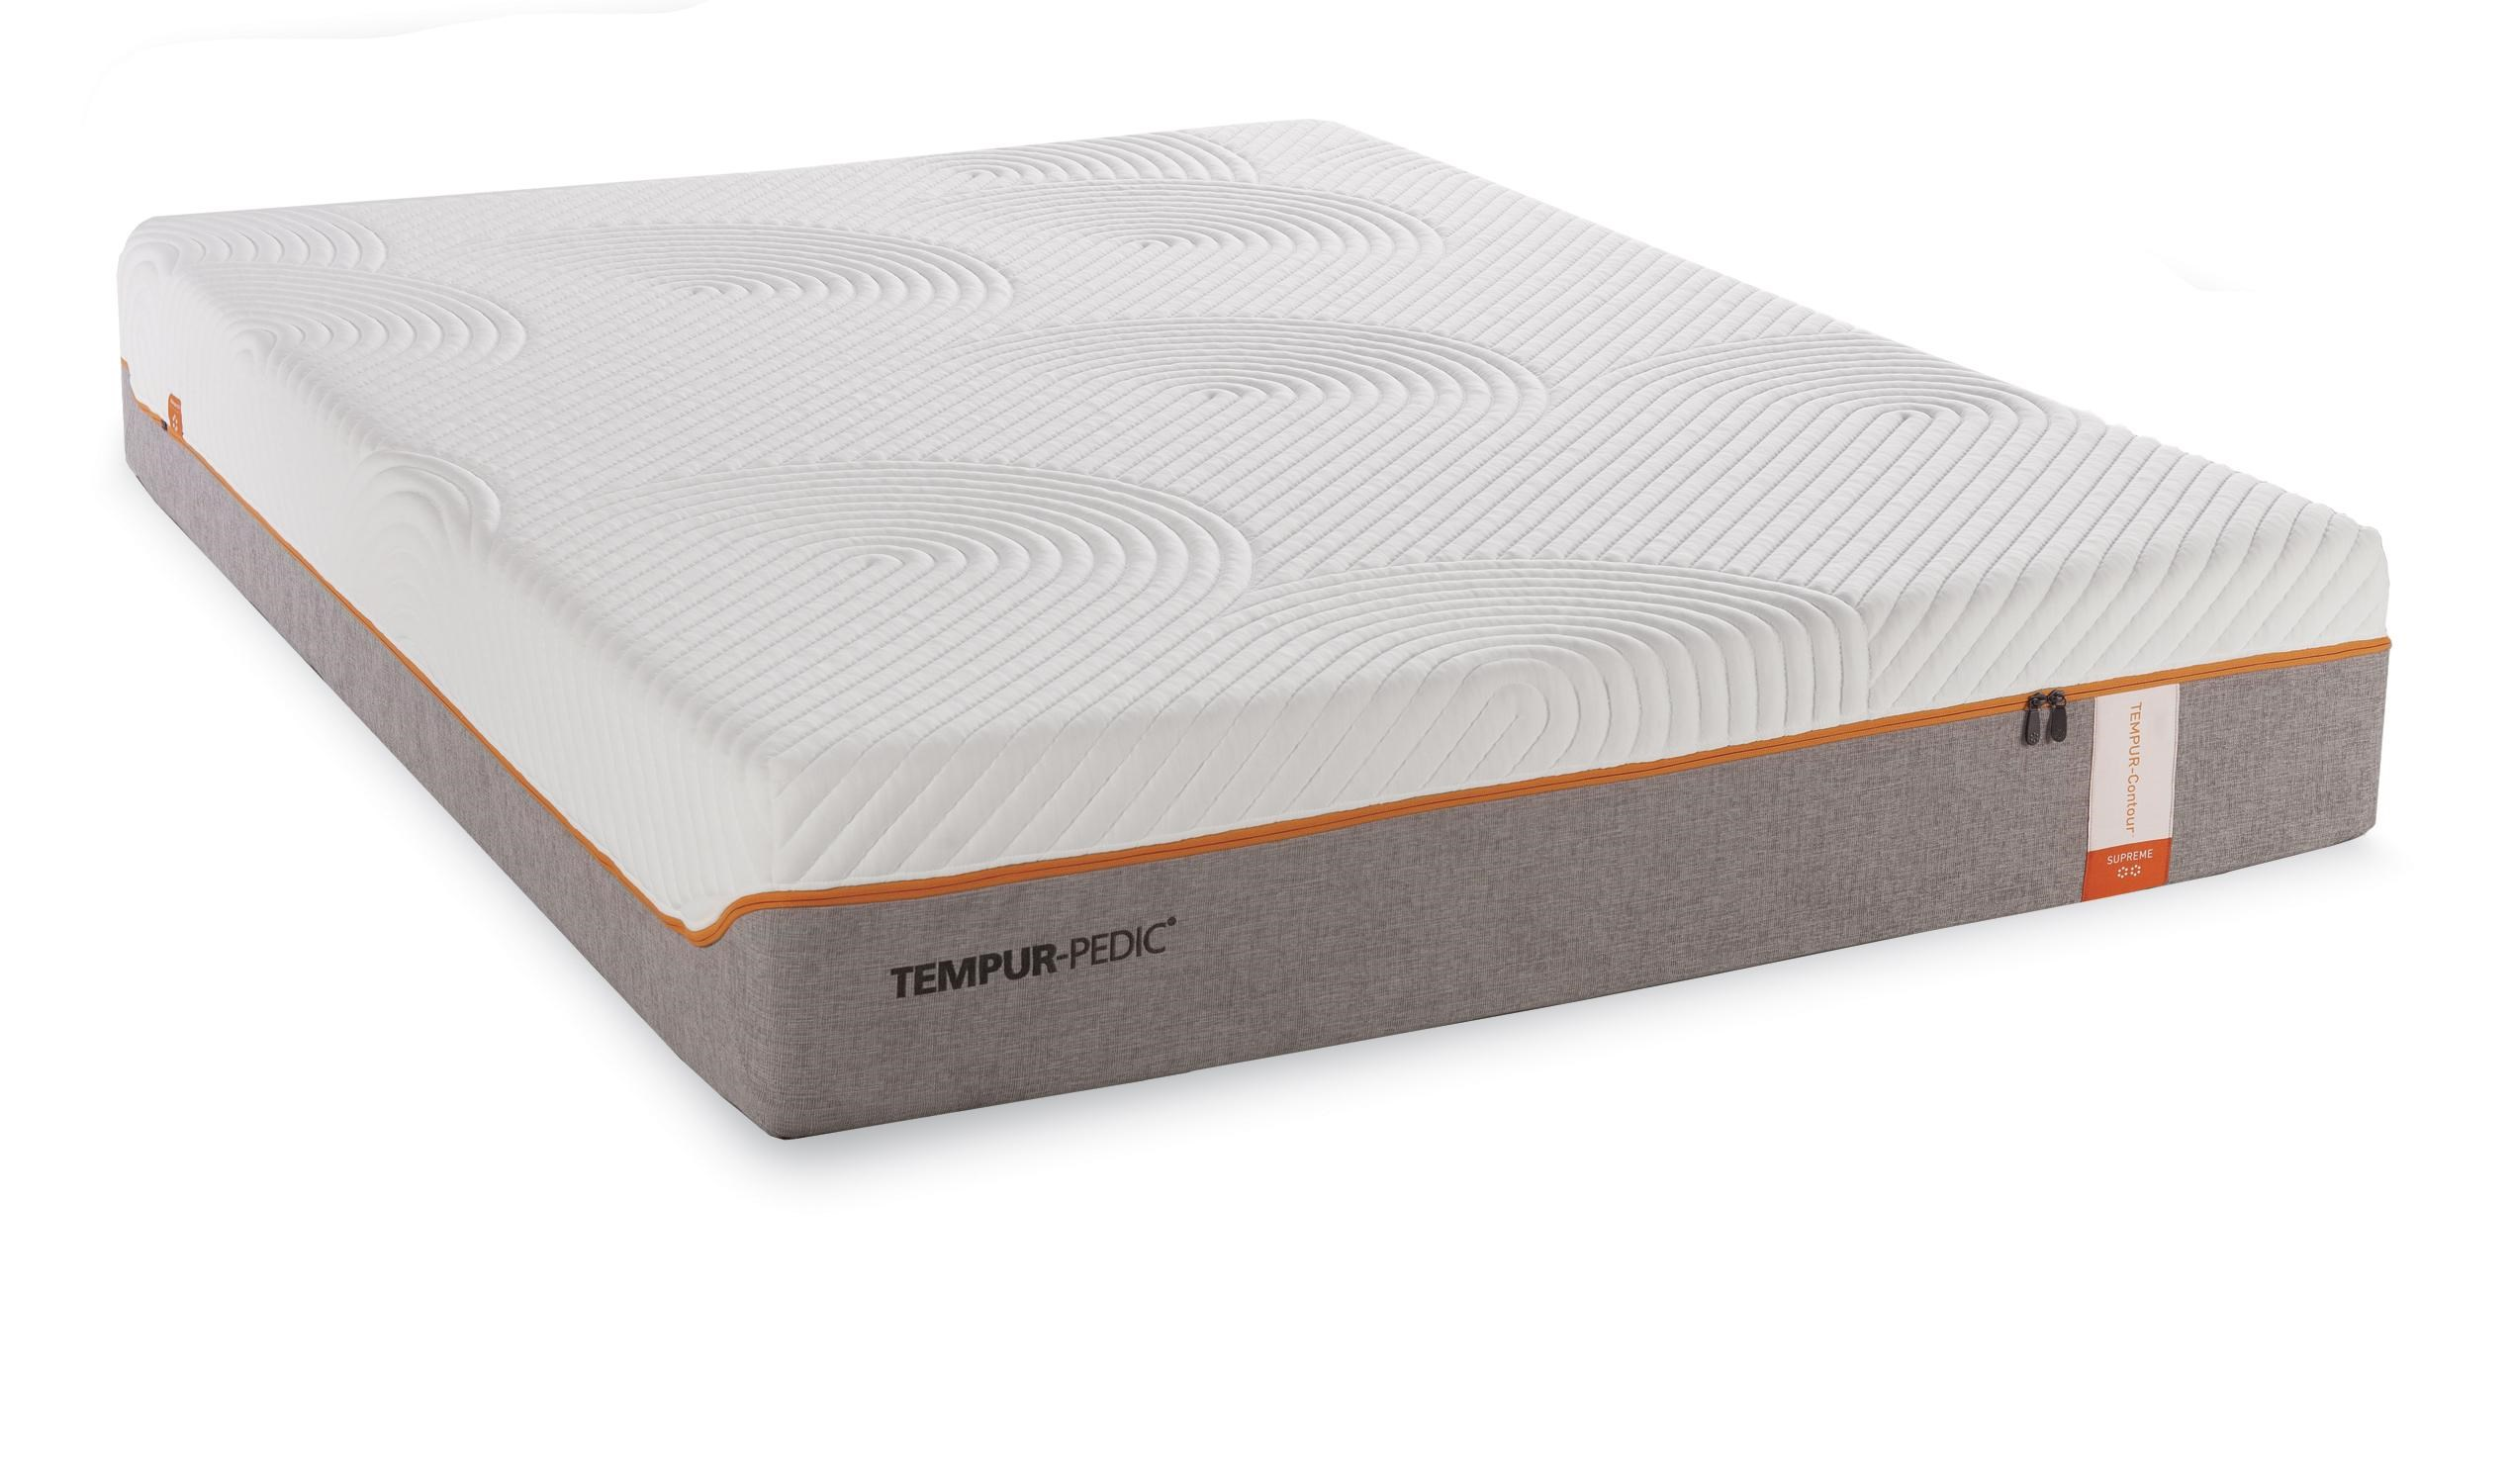 Tempur Pedic TEMPUR Contour Supreme King Firm Mattress